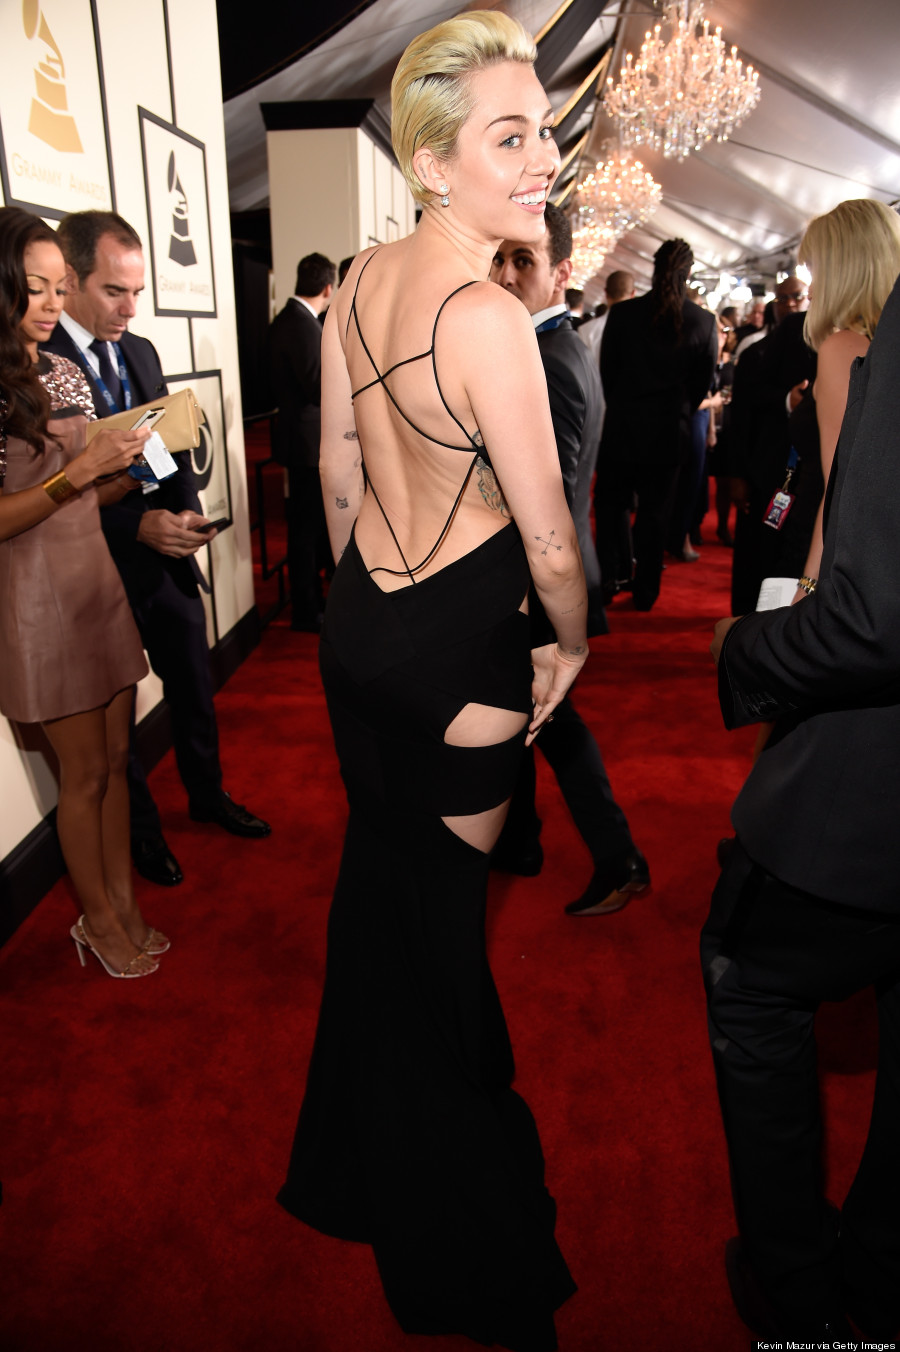 Miley Cyrus' Grammys 2015 Dress Is Ridiculously Sexy ...